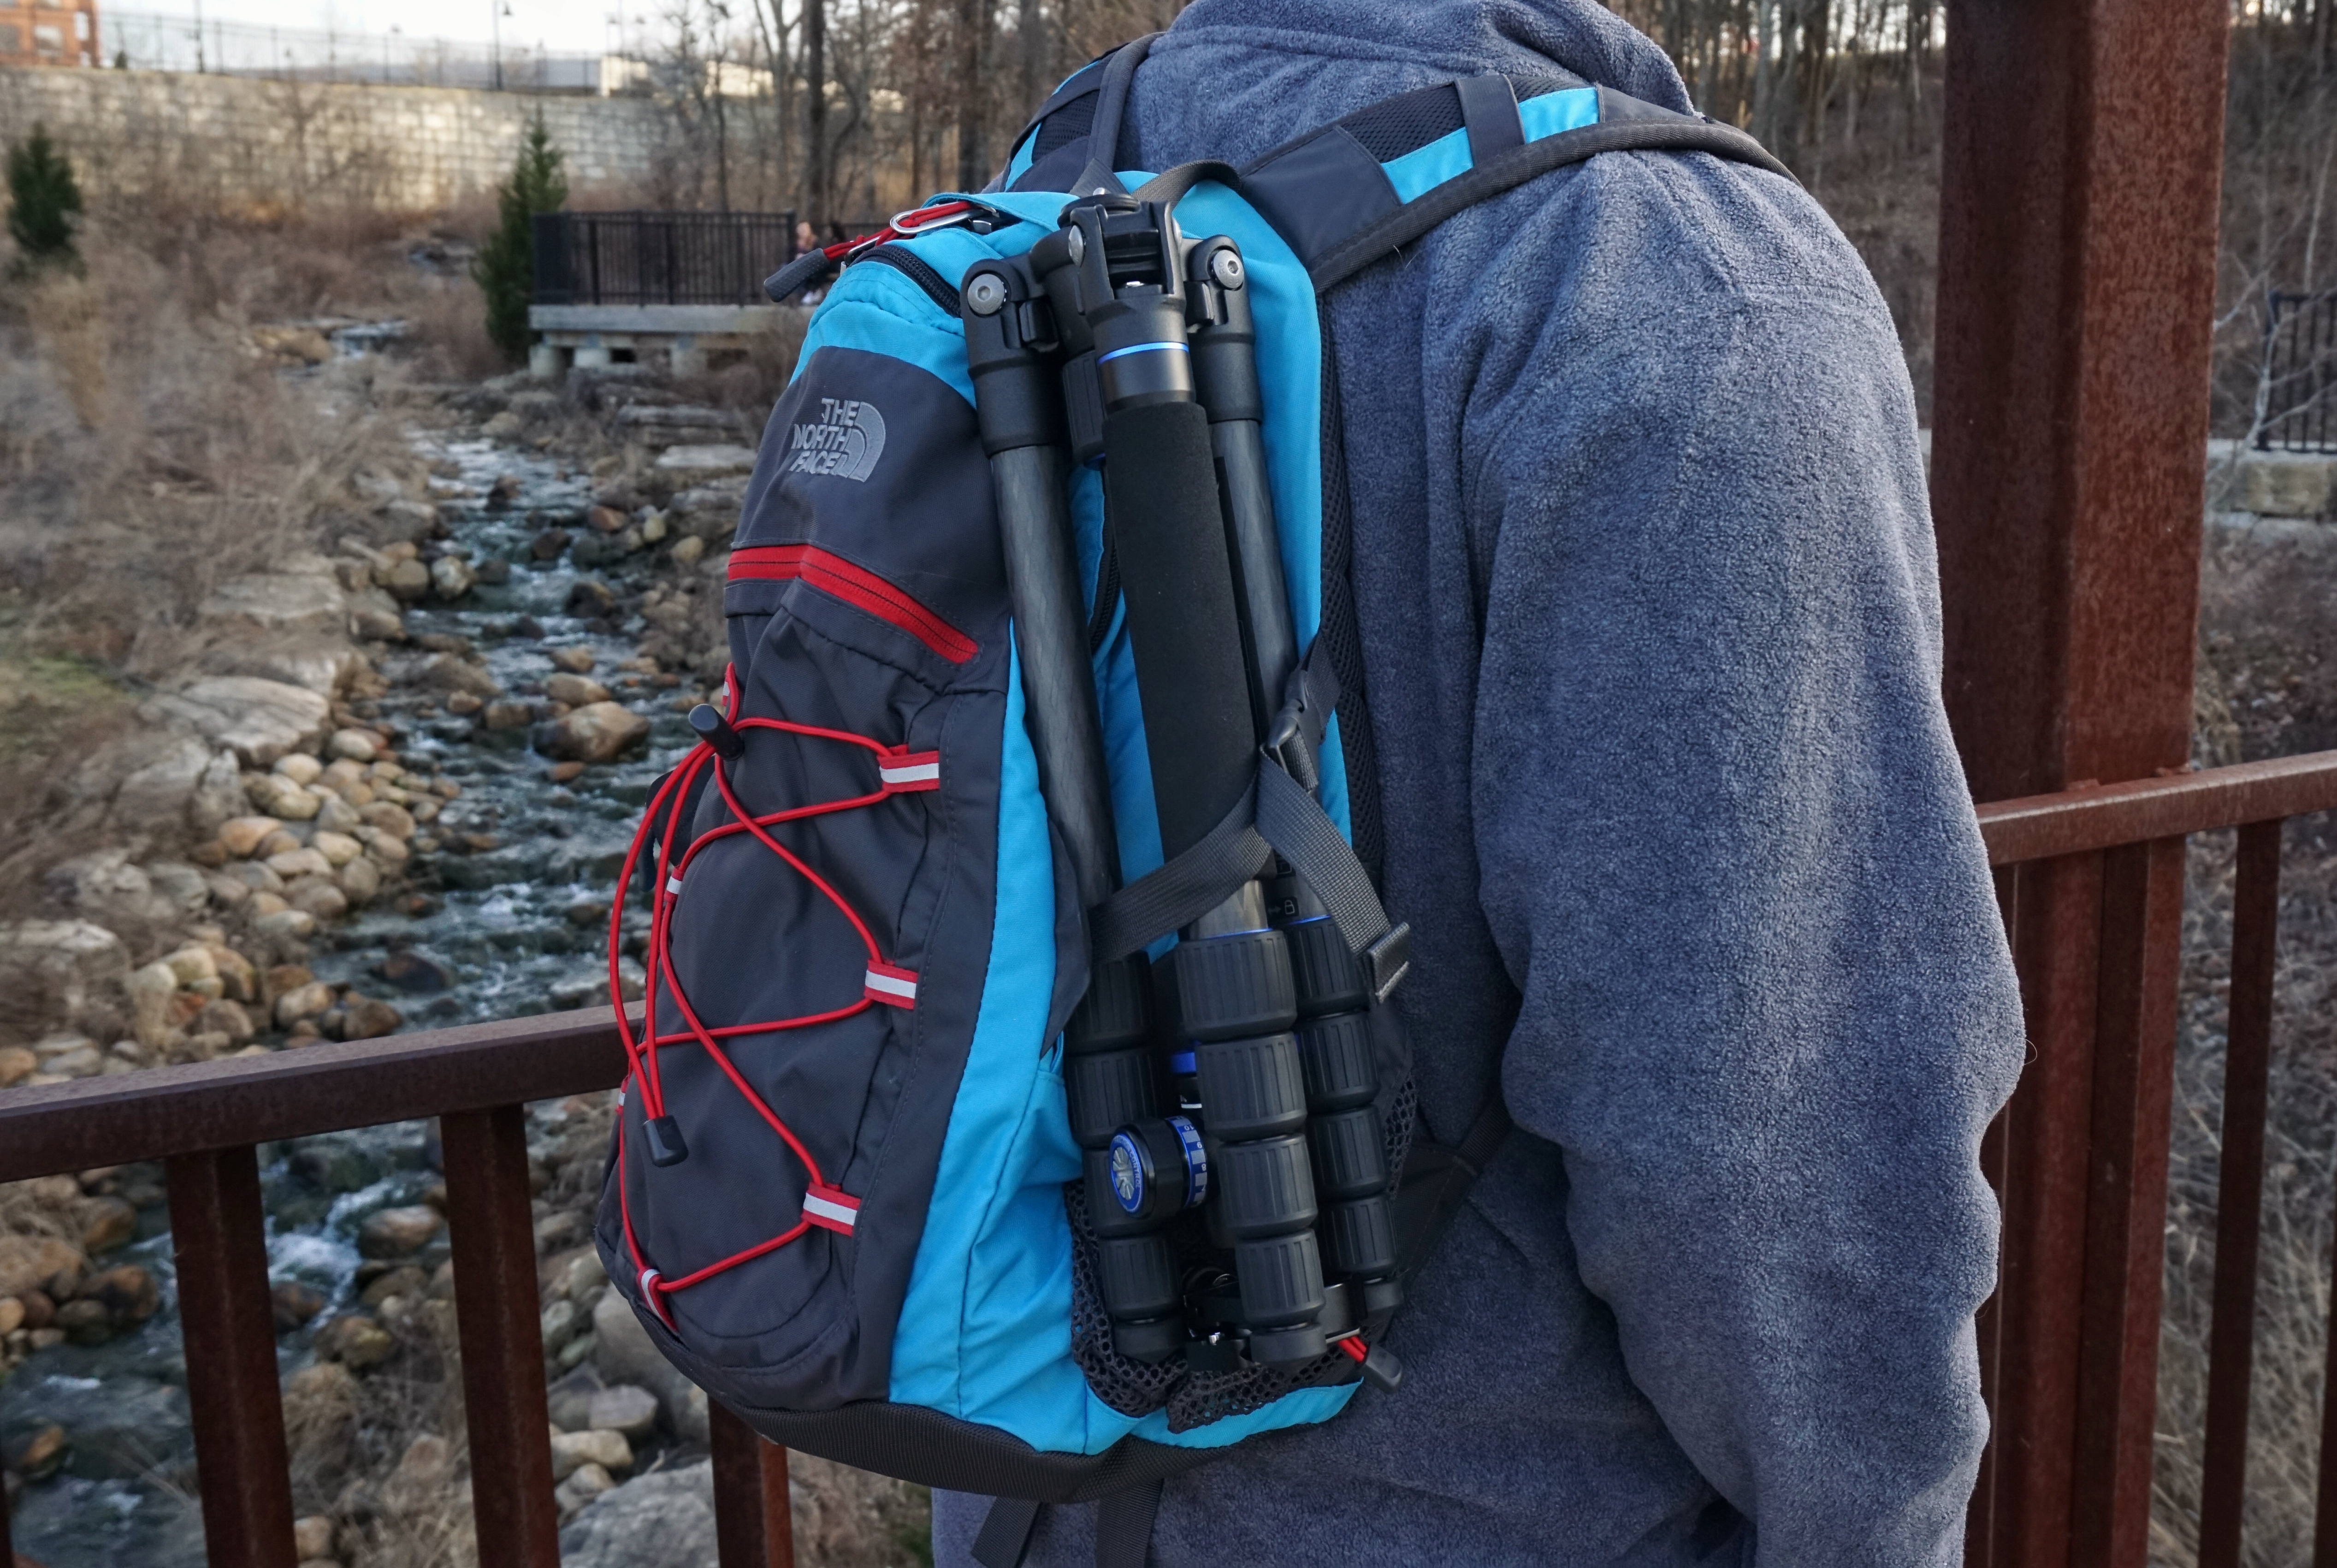 Benro Travel Tripod - the best tripod for travel